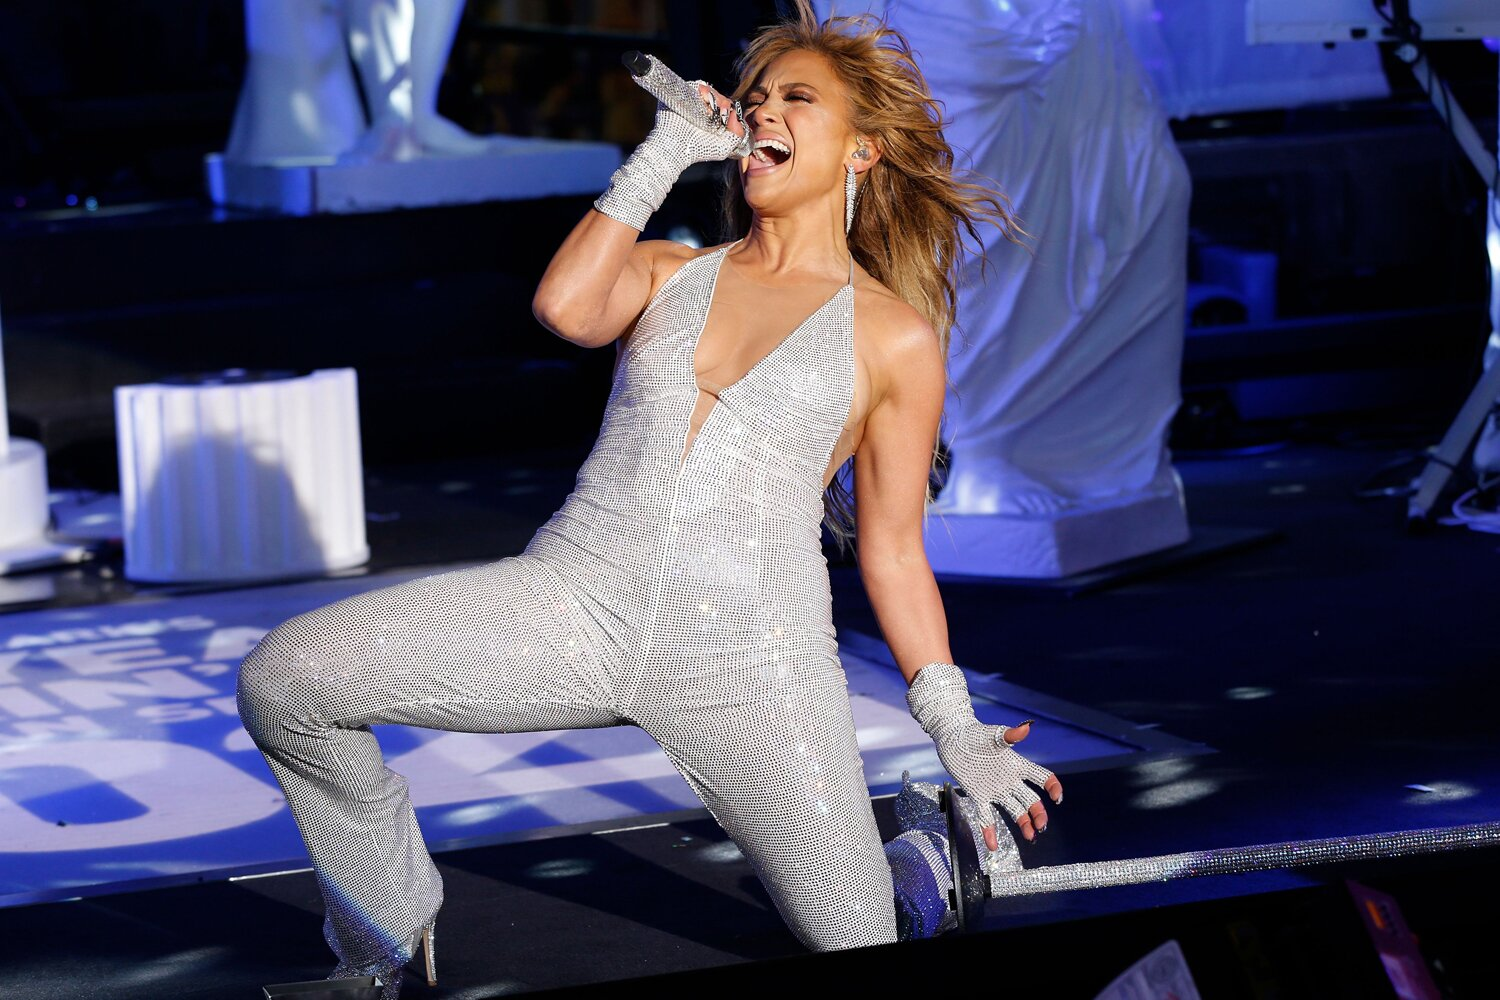 Jennifer Lopez performs in Times Square during New Year's Eve celebrations